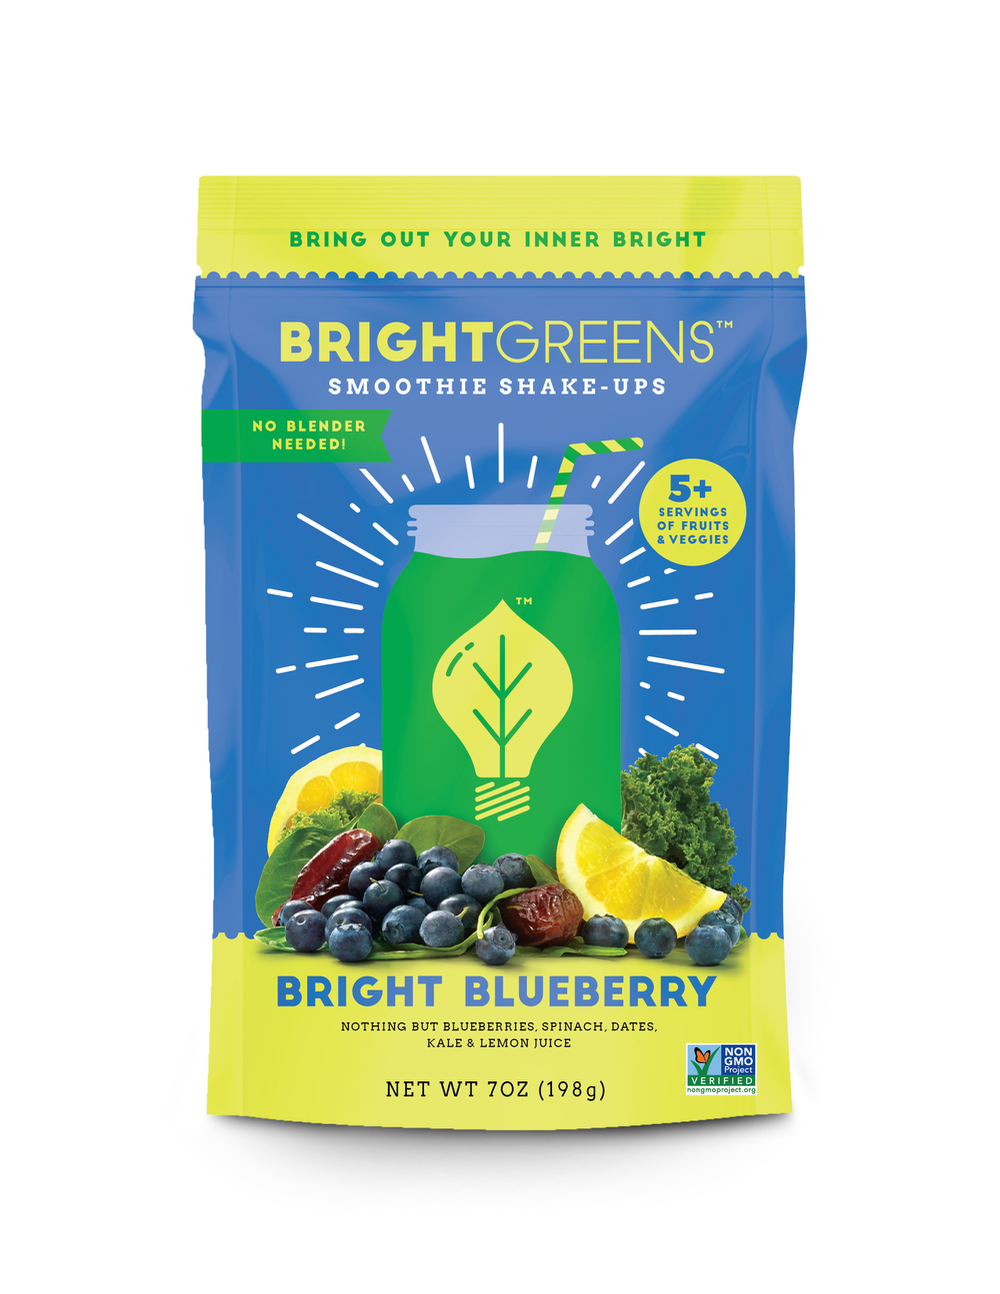 Bright Greens Smoothie Shake Ups Bright Blueberry